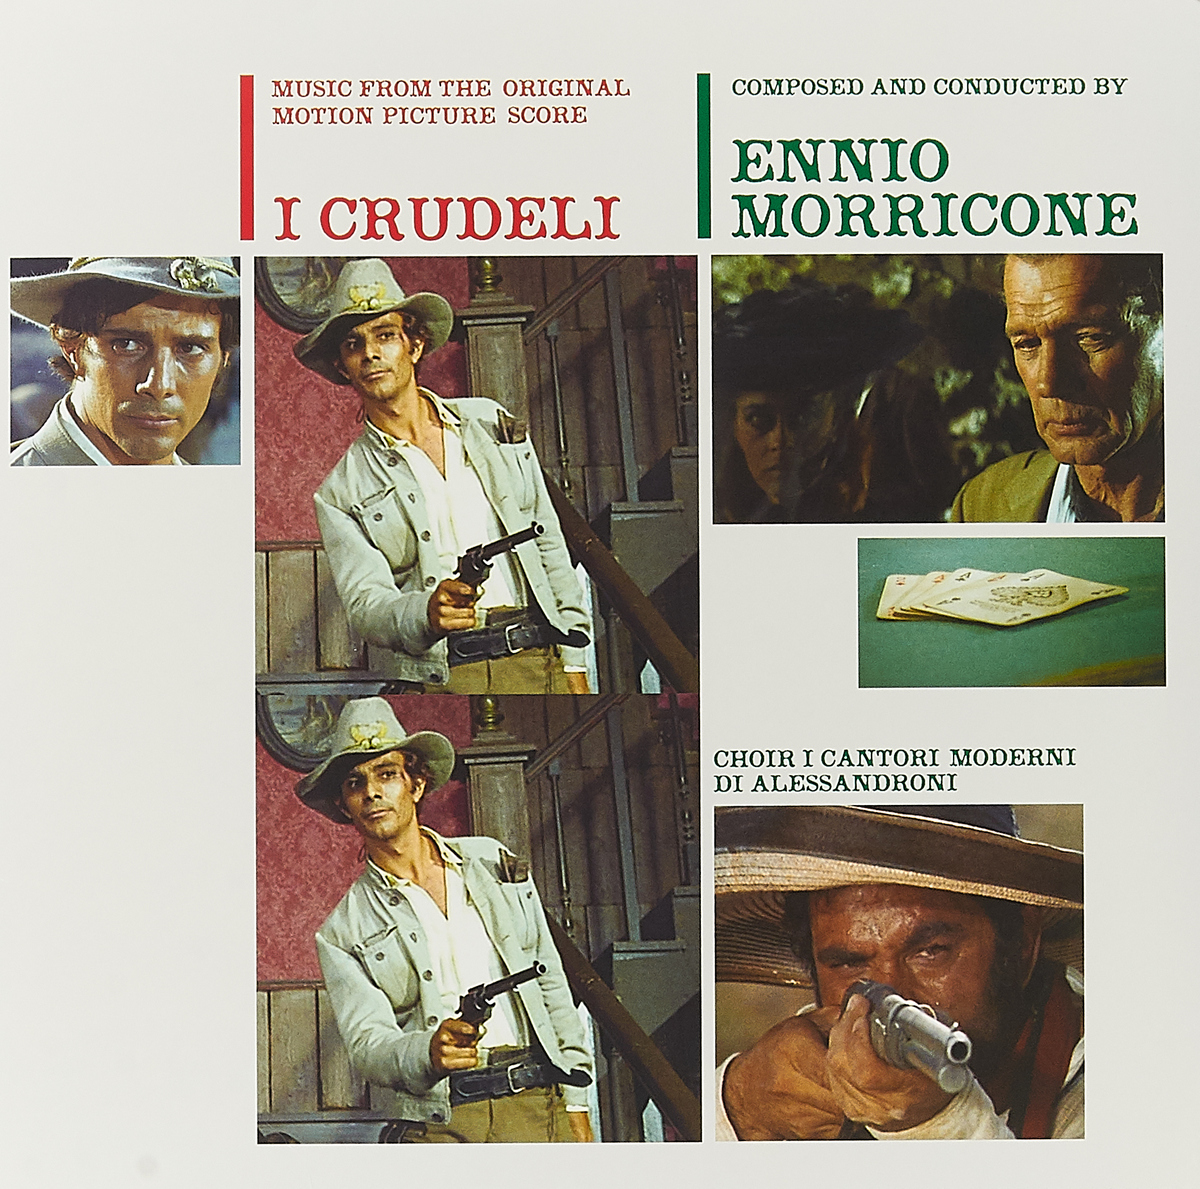 Эннио Морриконе Ennio Morricone. I Crudeli (Music From The Original Motion Picture Score) (LP)